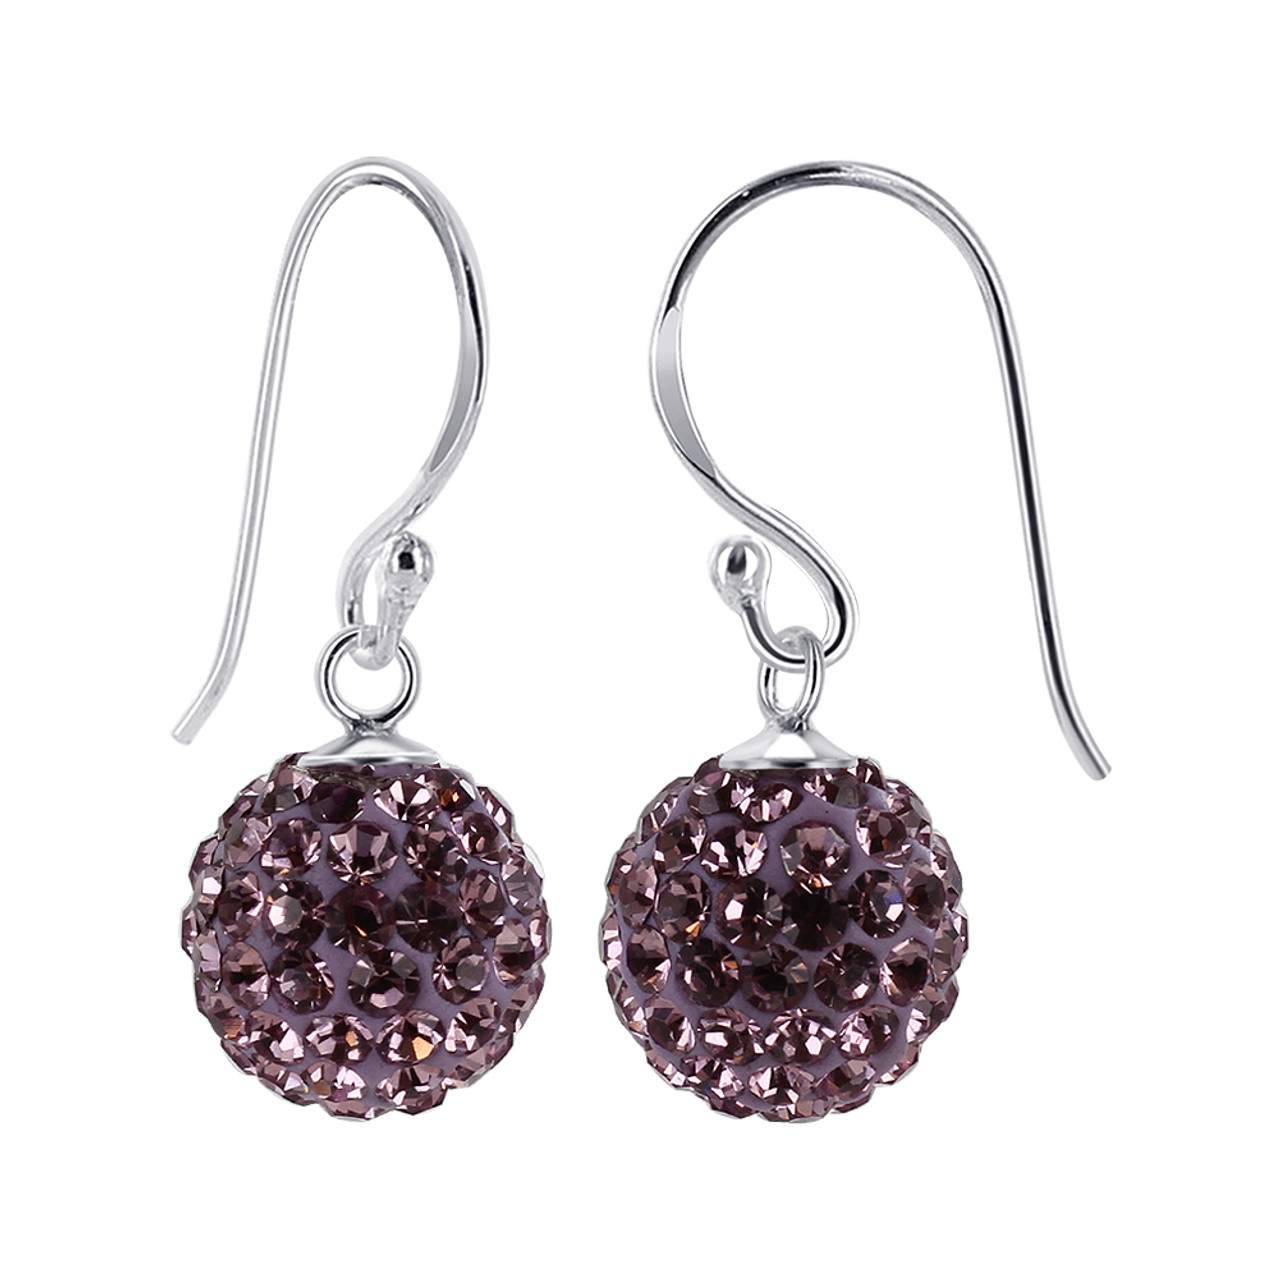 Studded Lavender Crystal 925 Silver Drop Earrings